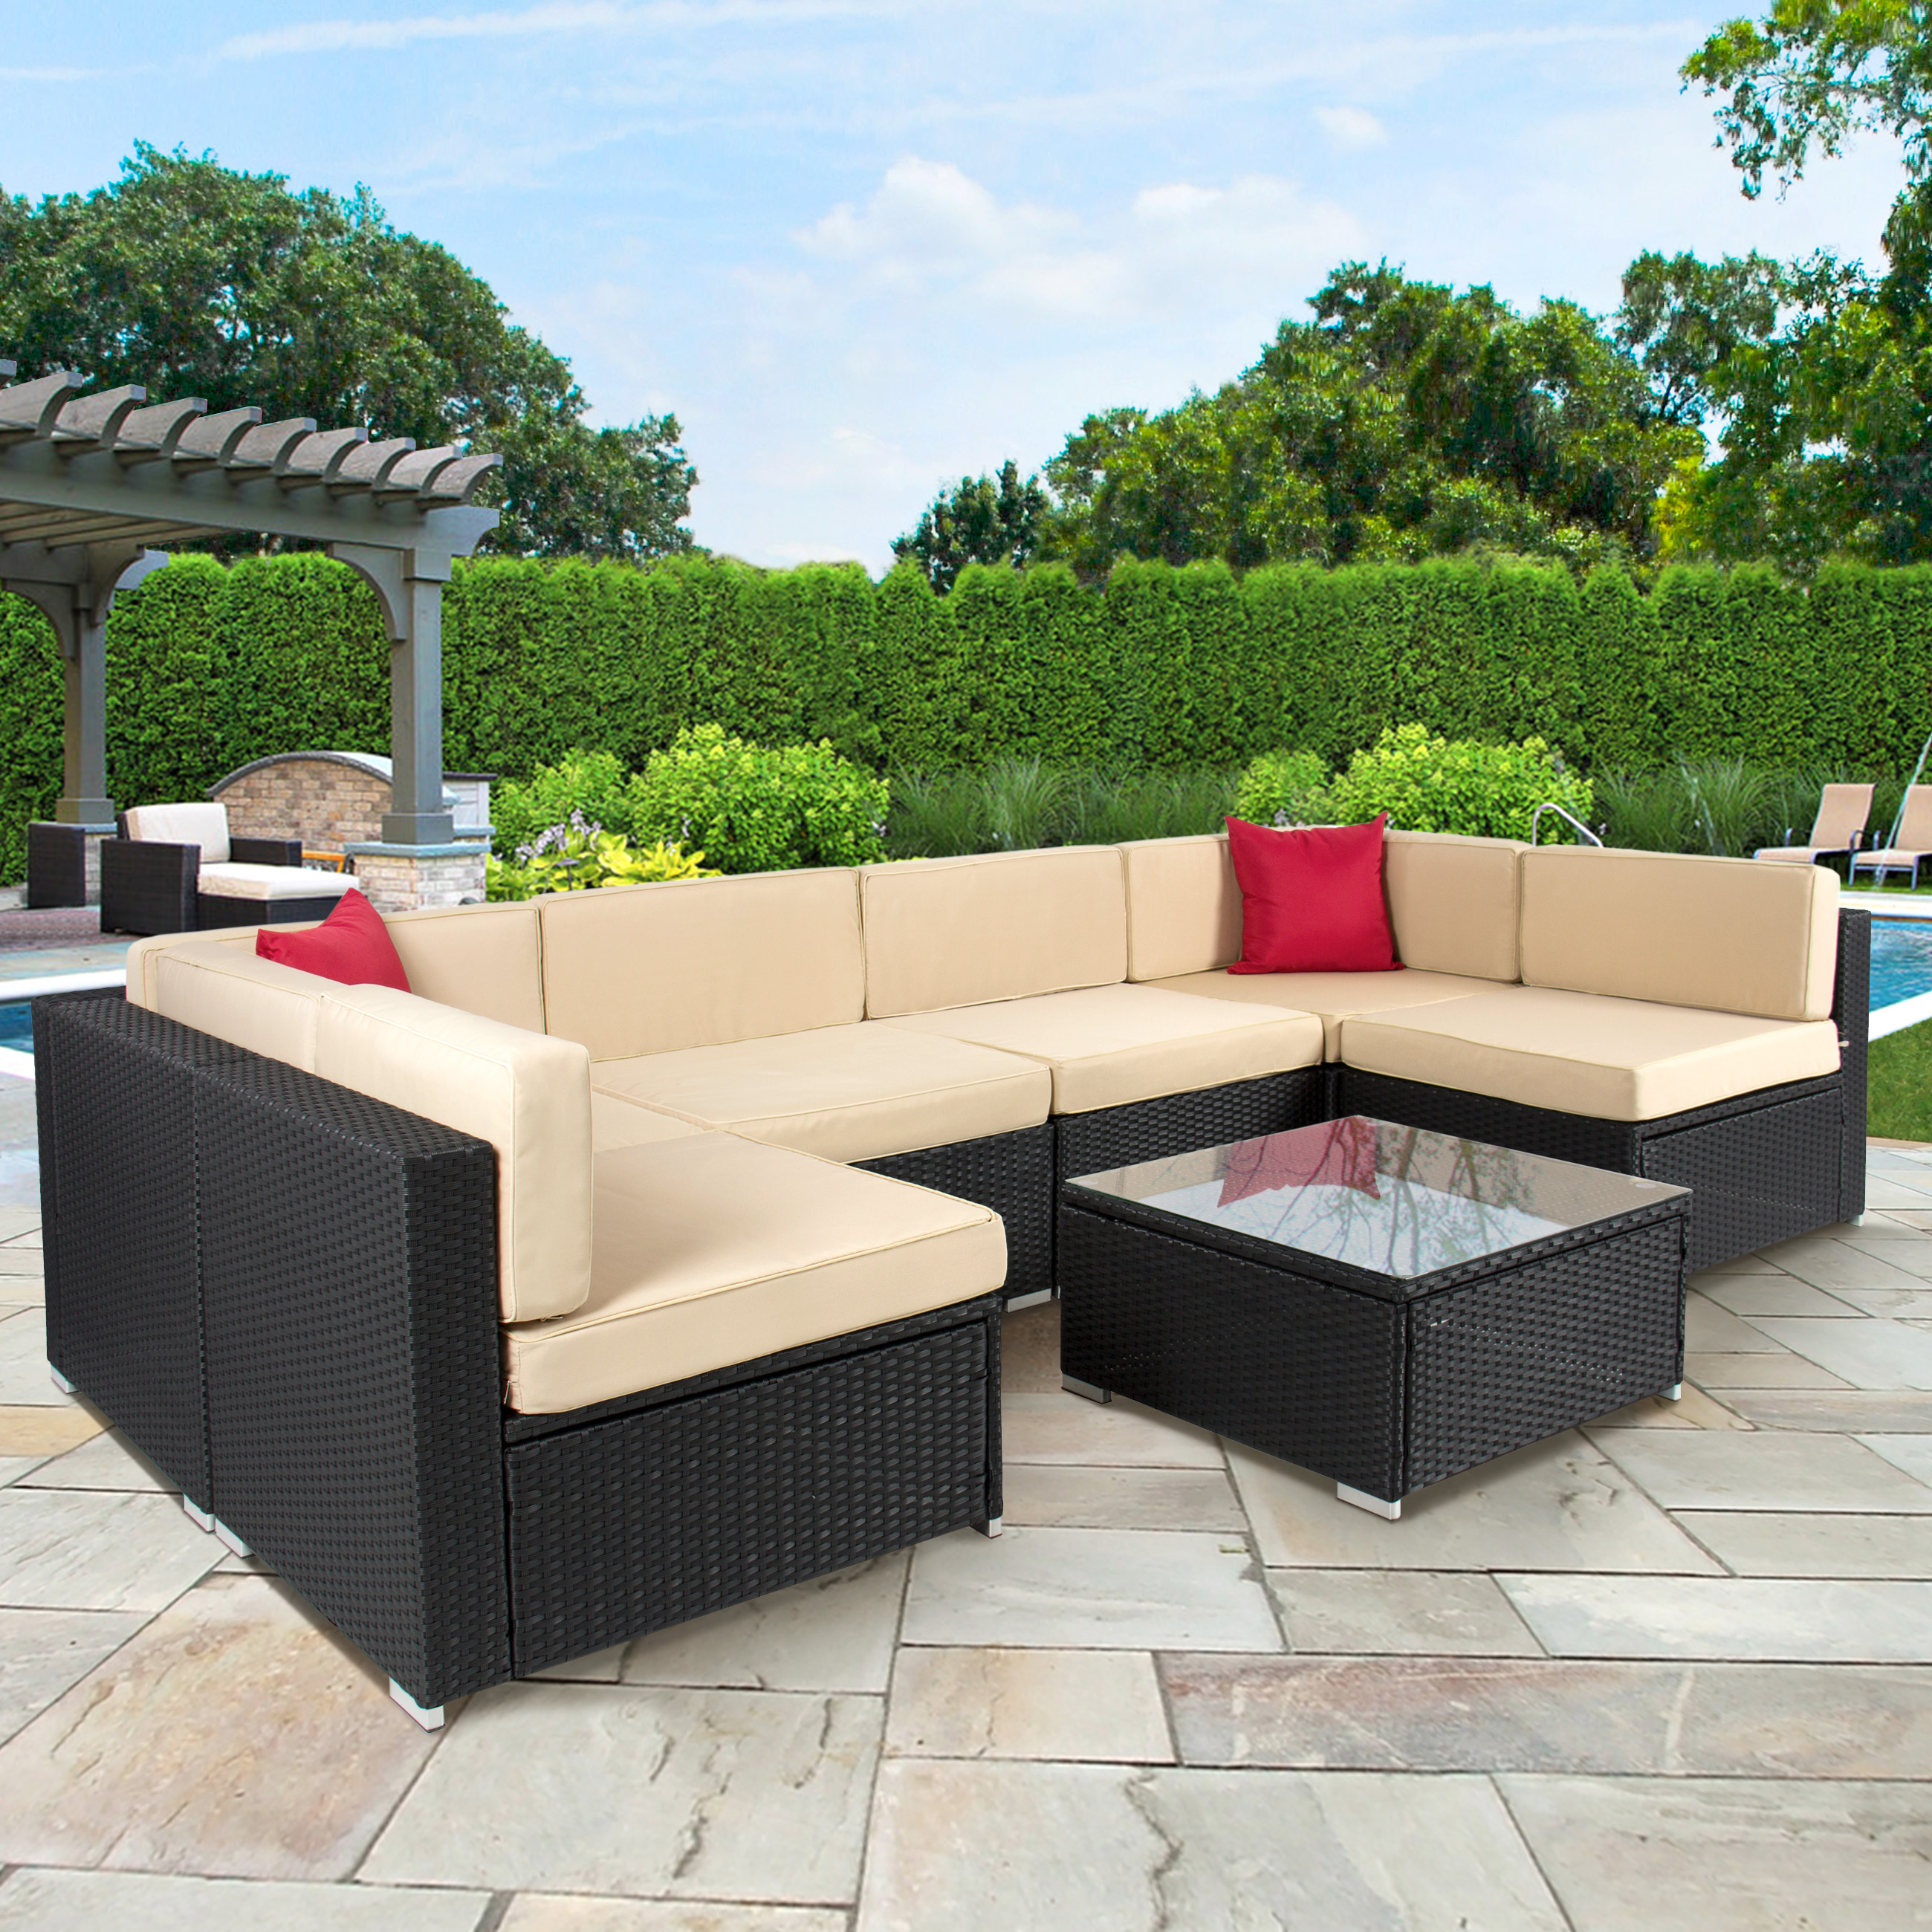 Modular all weather rattan furniture best choice products outdoor garden patio 4pc cushioned seat black wicker  sofa ygskunx